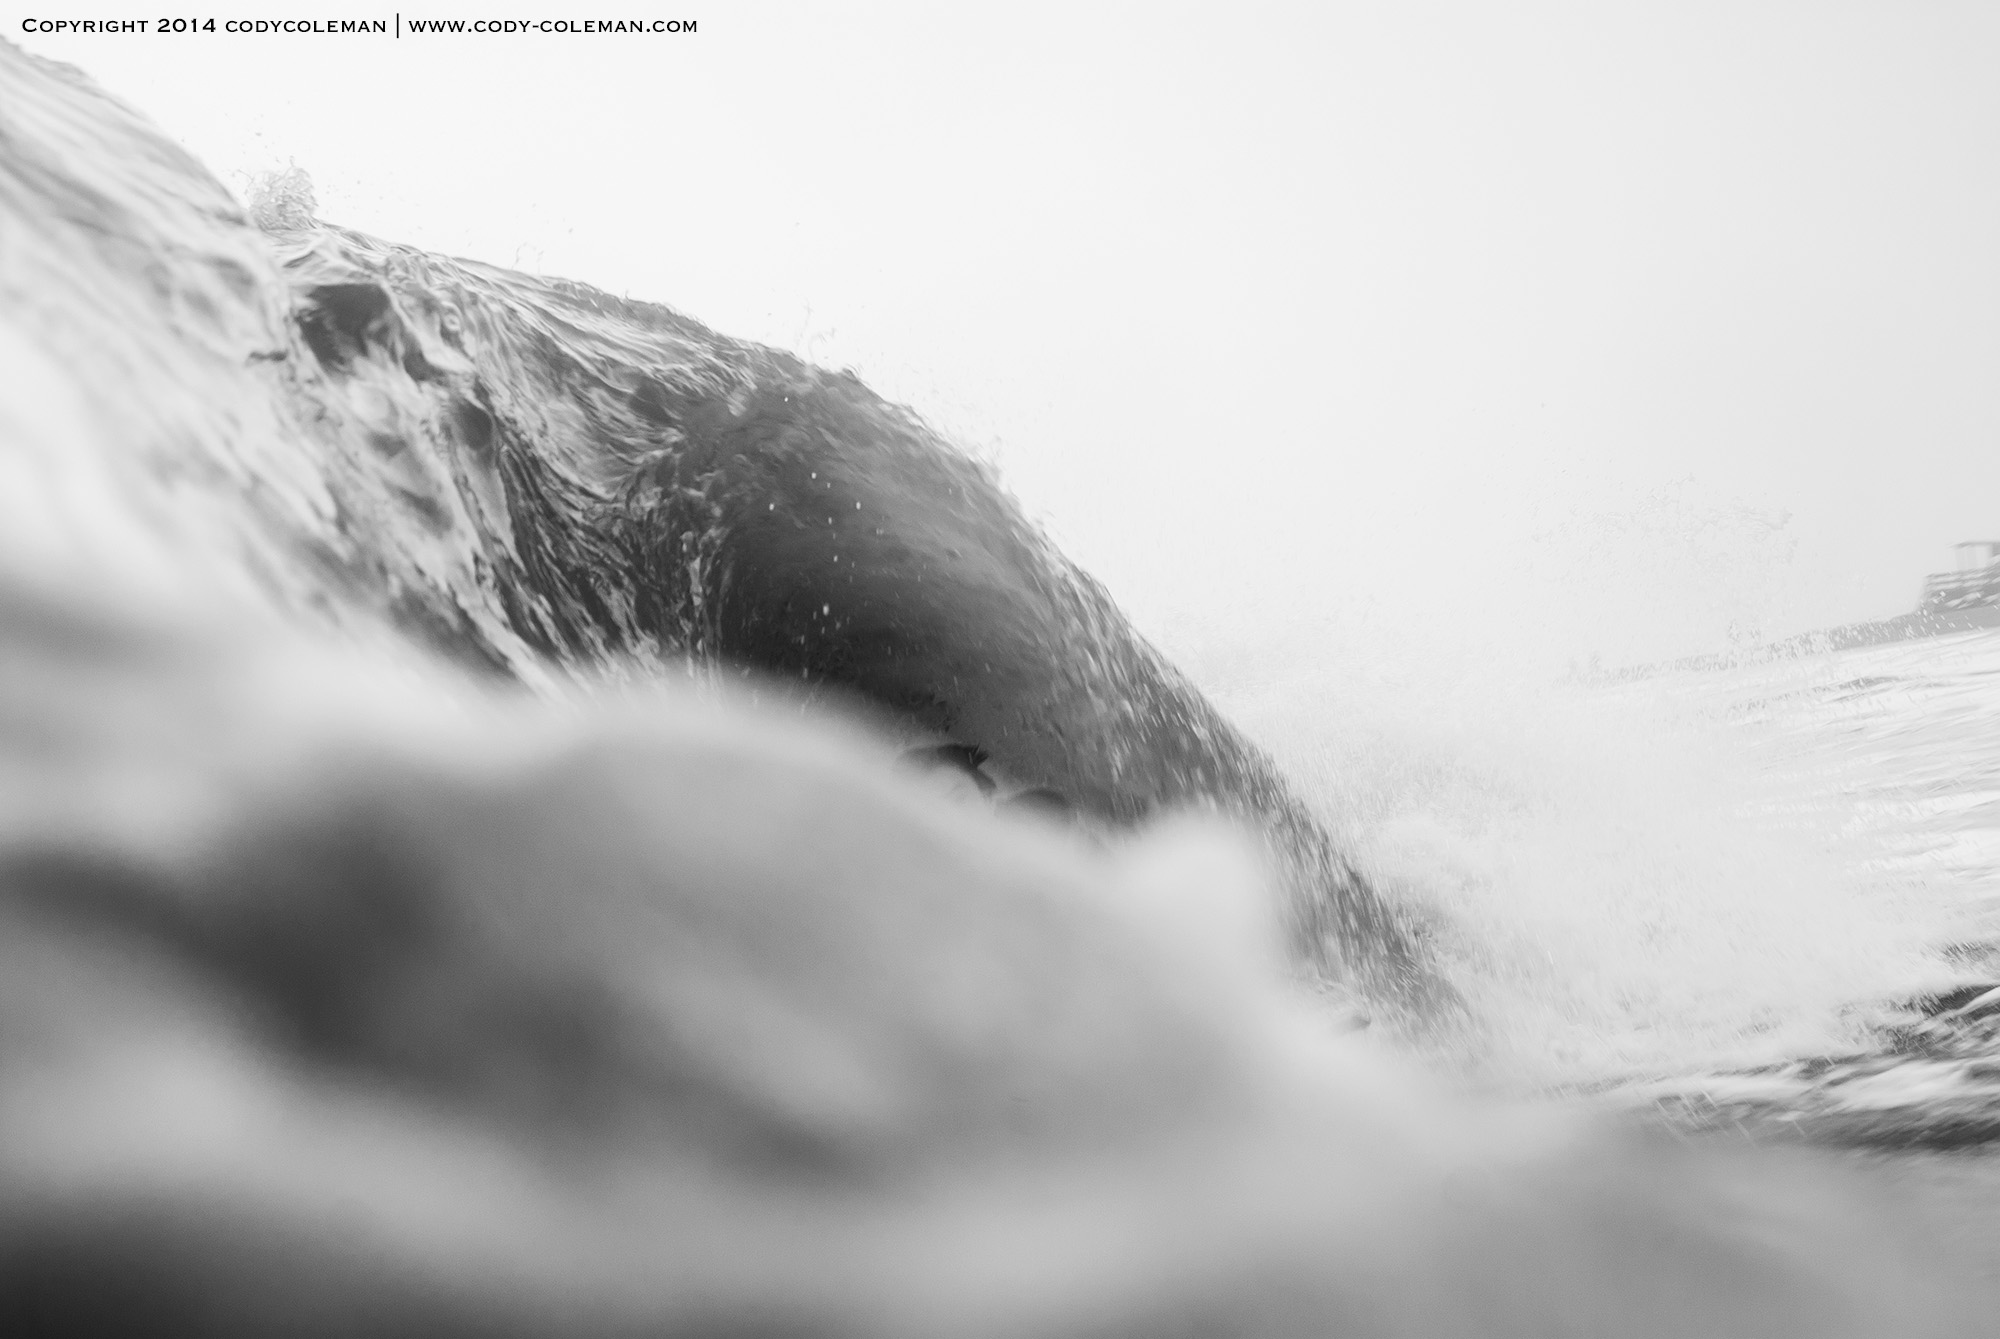 Jared Jeffs in the tube and behind the wave.